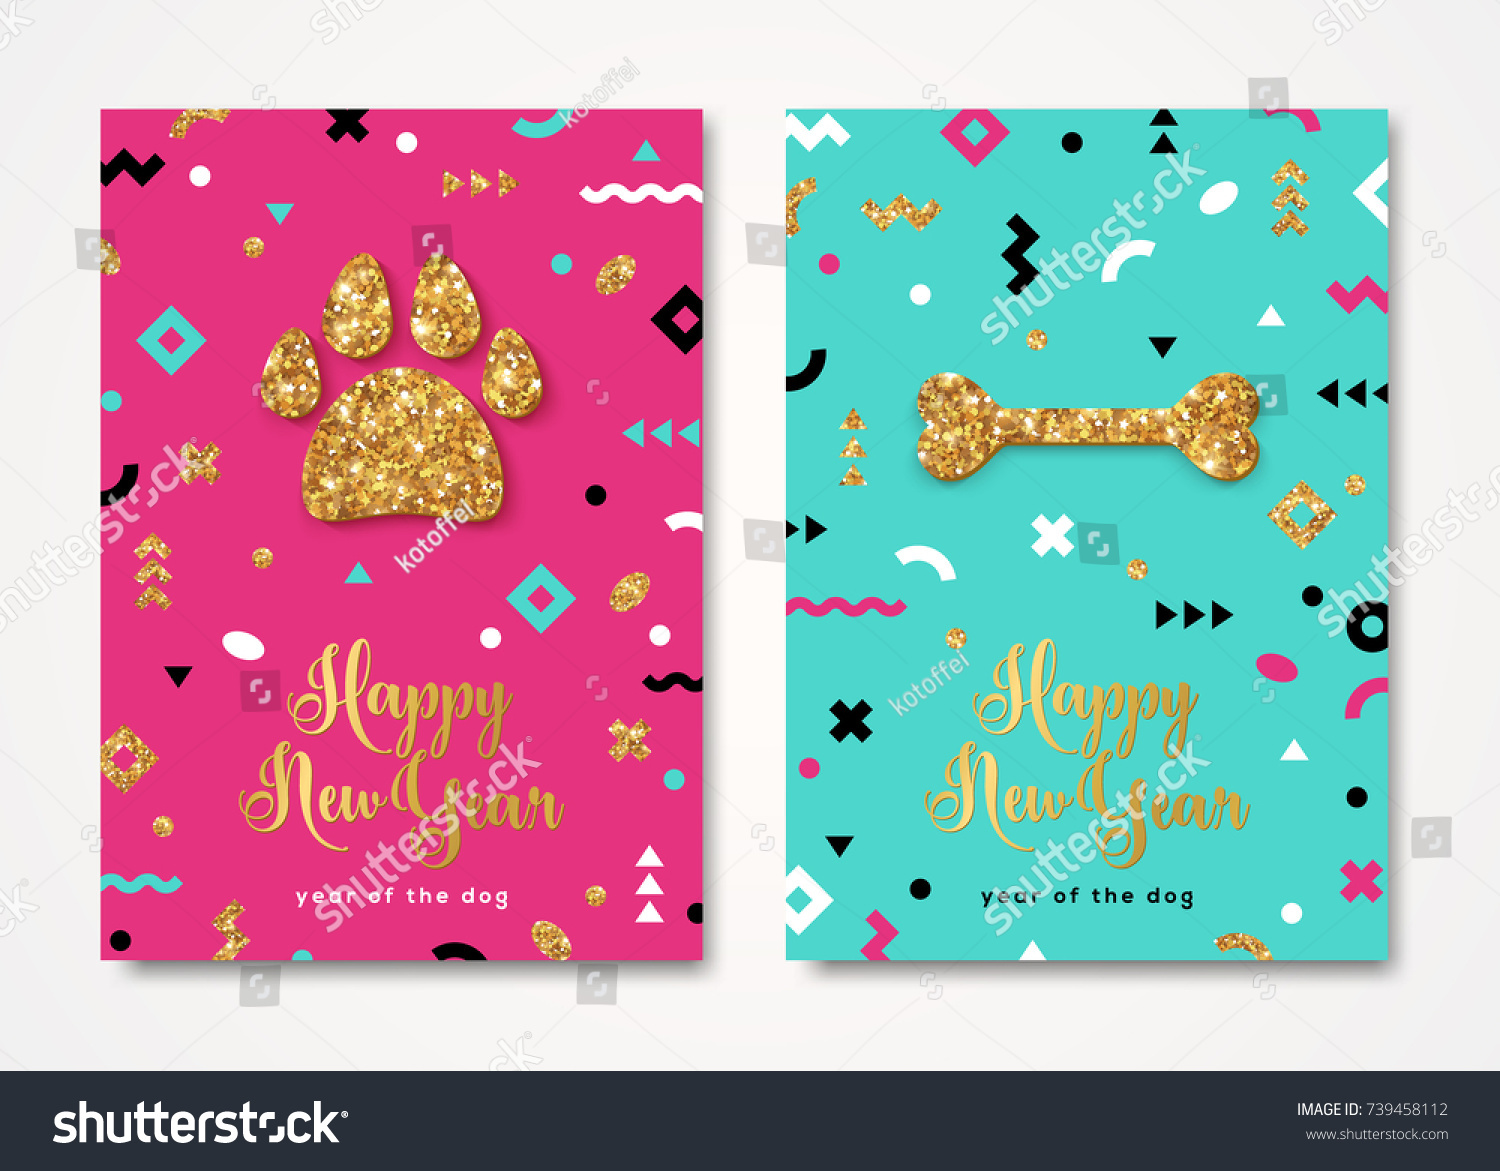 2018 new year greeting card shining stock vector hd royalty free 2018 new year greeting card with shining gold dog paw print and bone vector illustration m4hsunfo